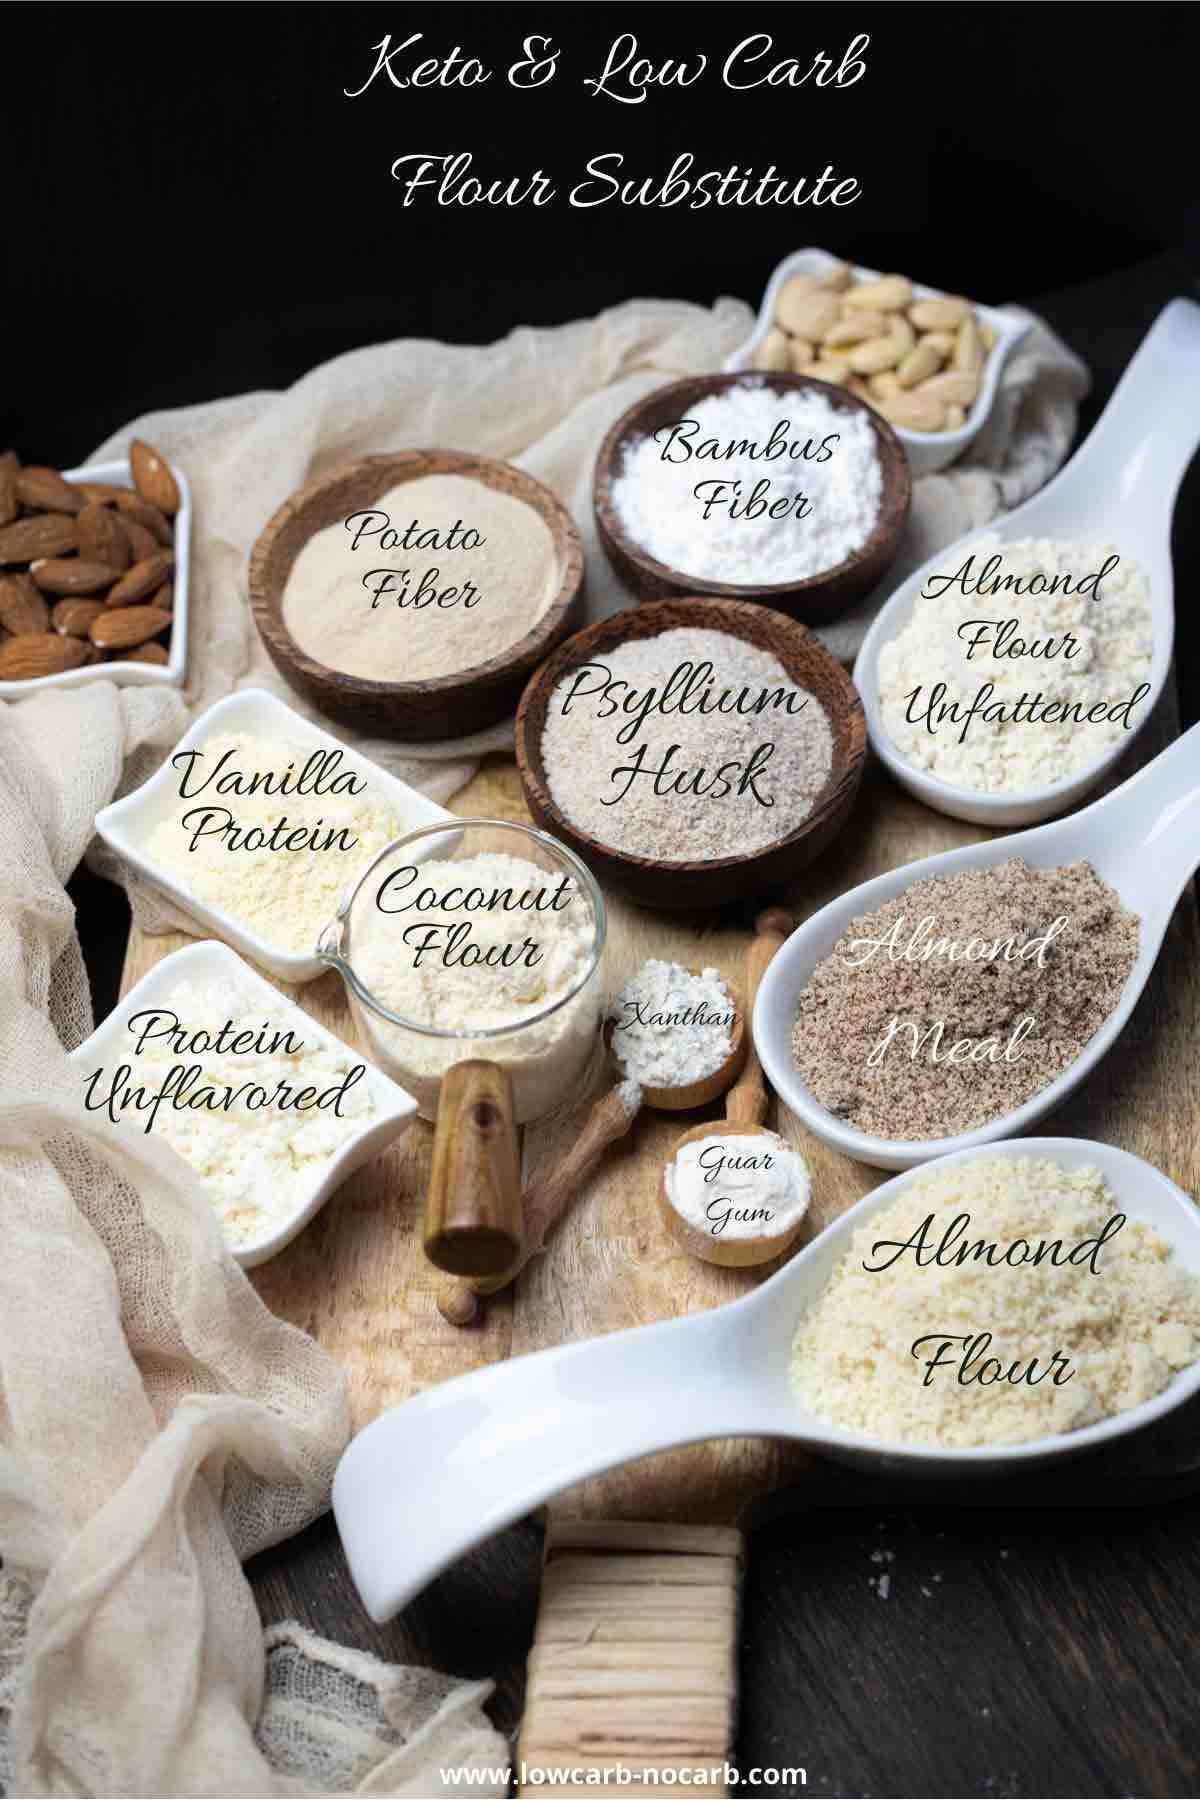 Various Keto and Low Carb Flour Alternatives in a bowls to compare